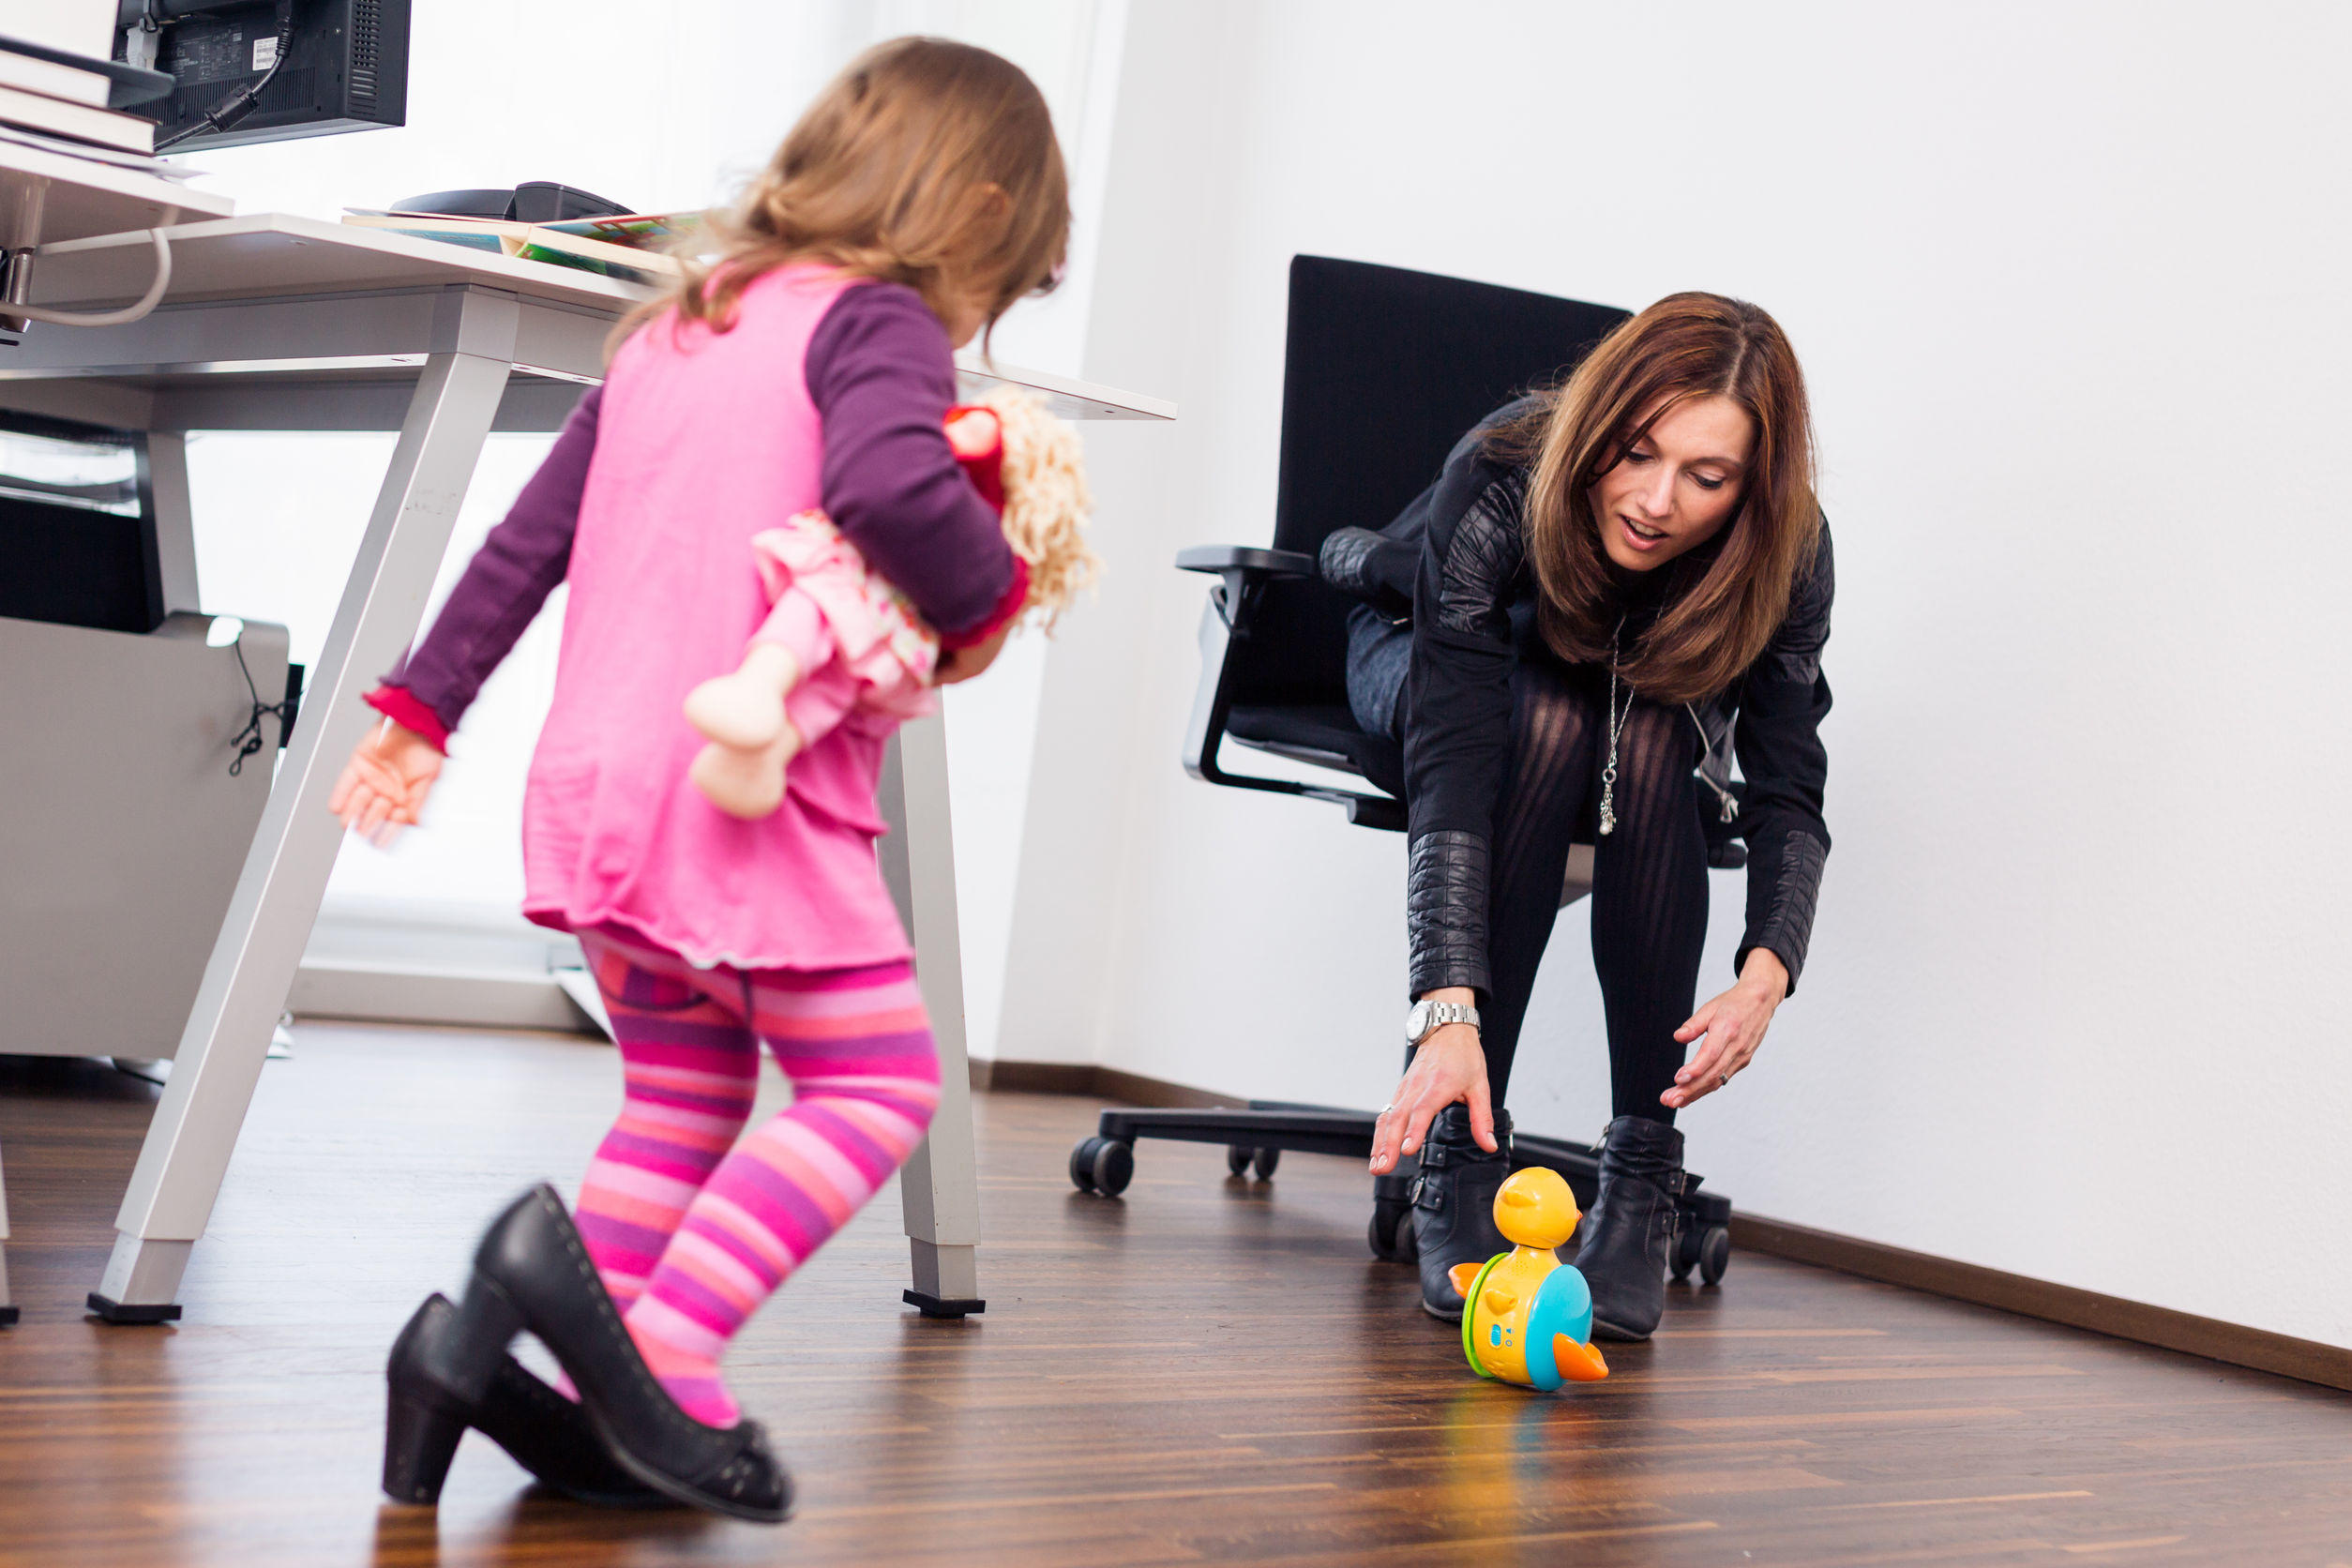 70368793 – working mom and daughter at the office